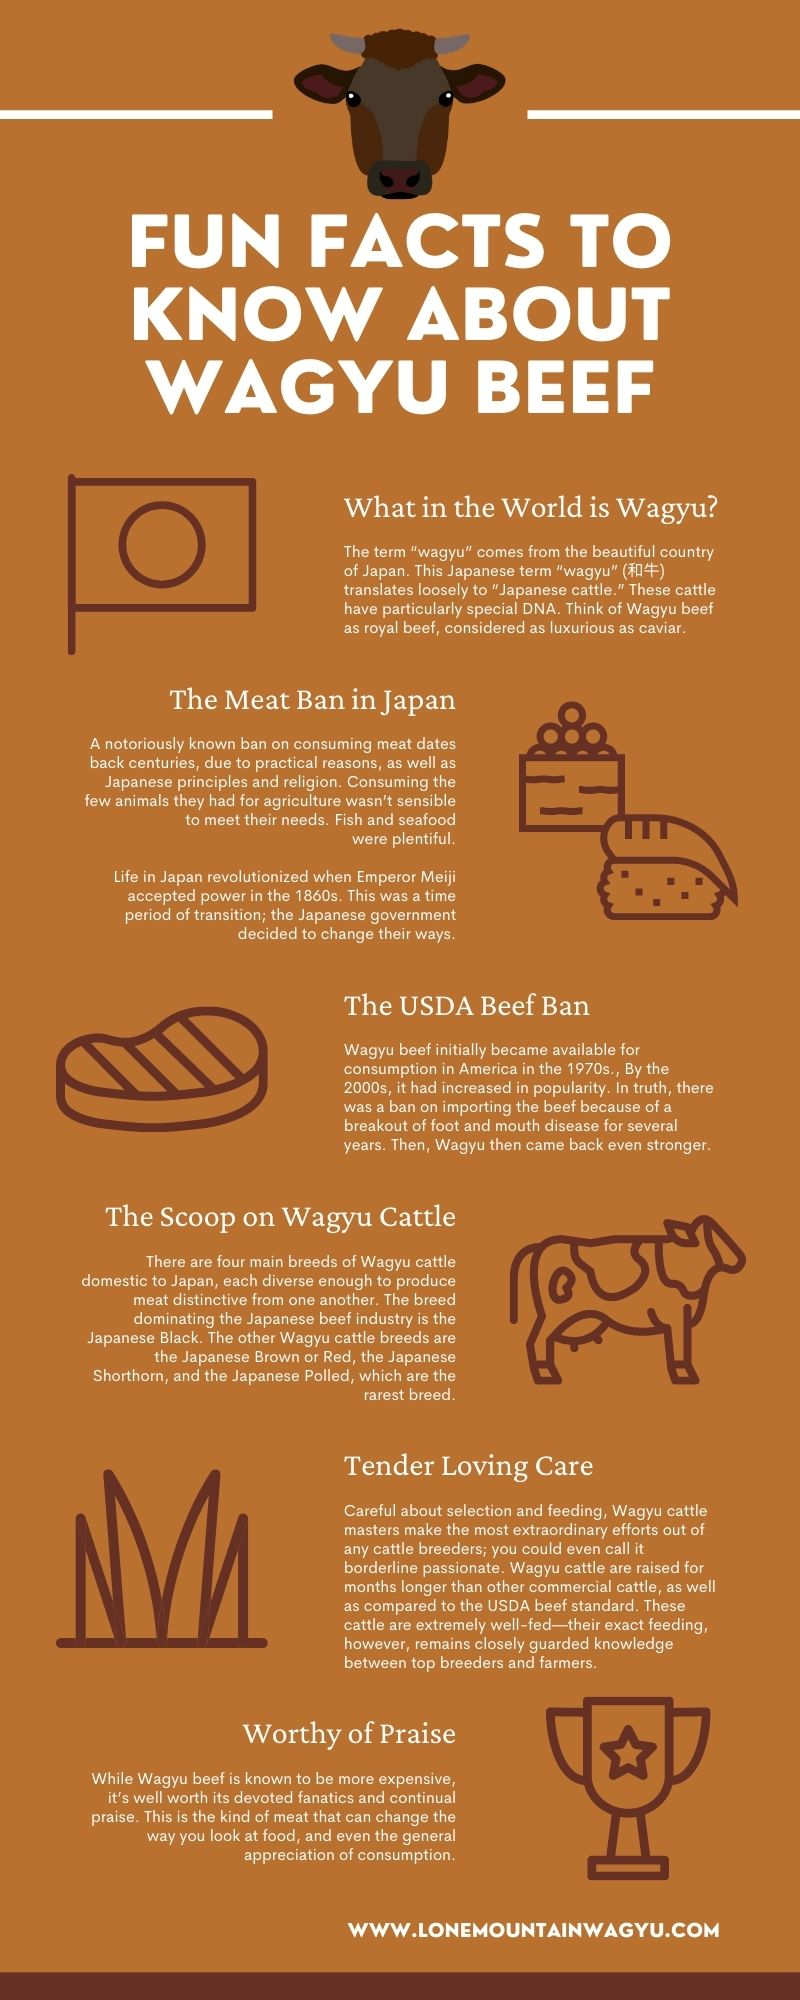 Facts About Wagyu Beef